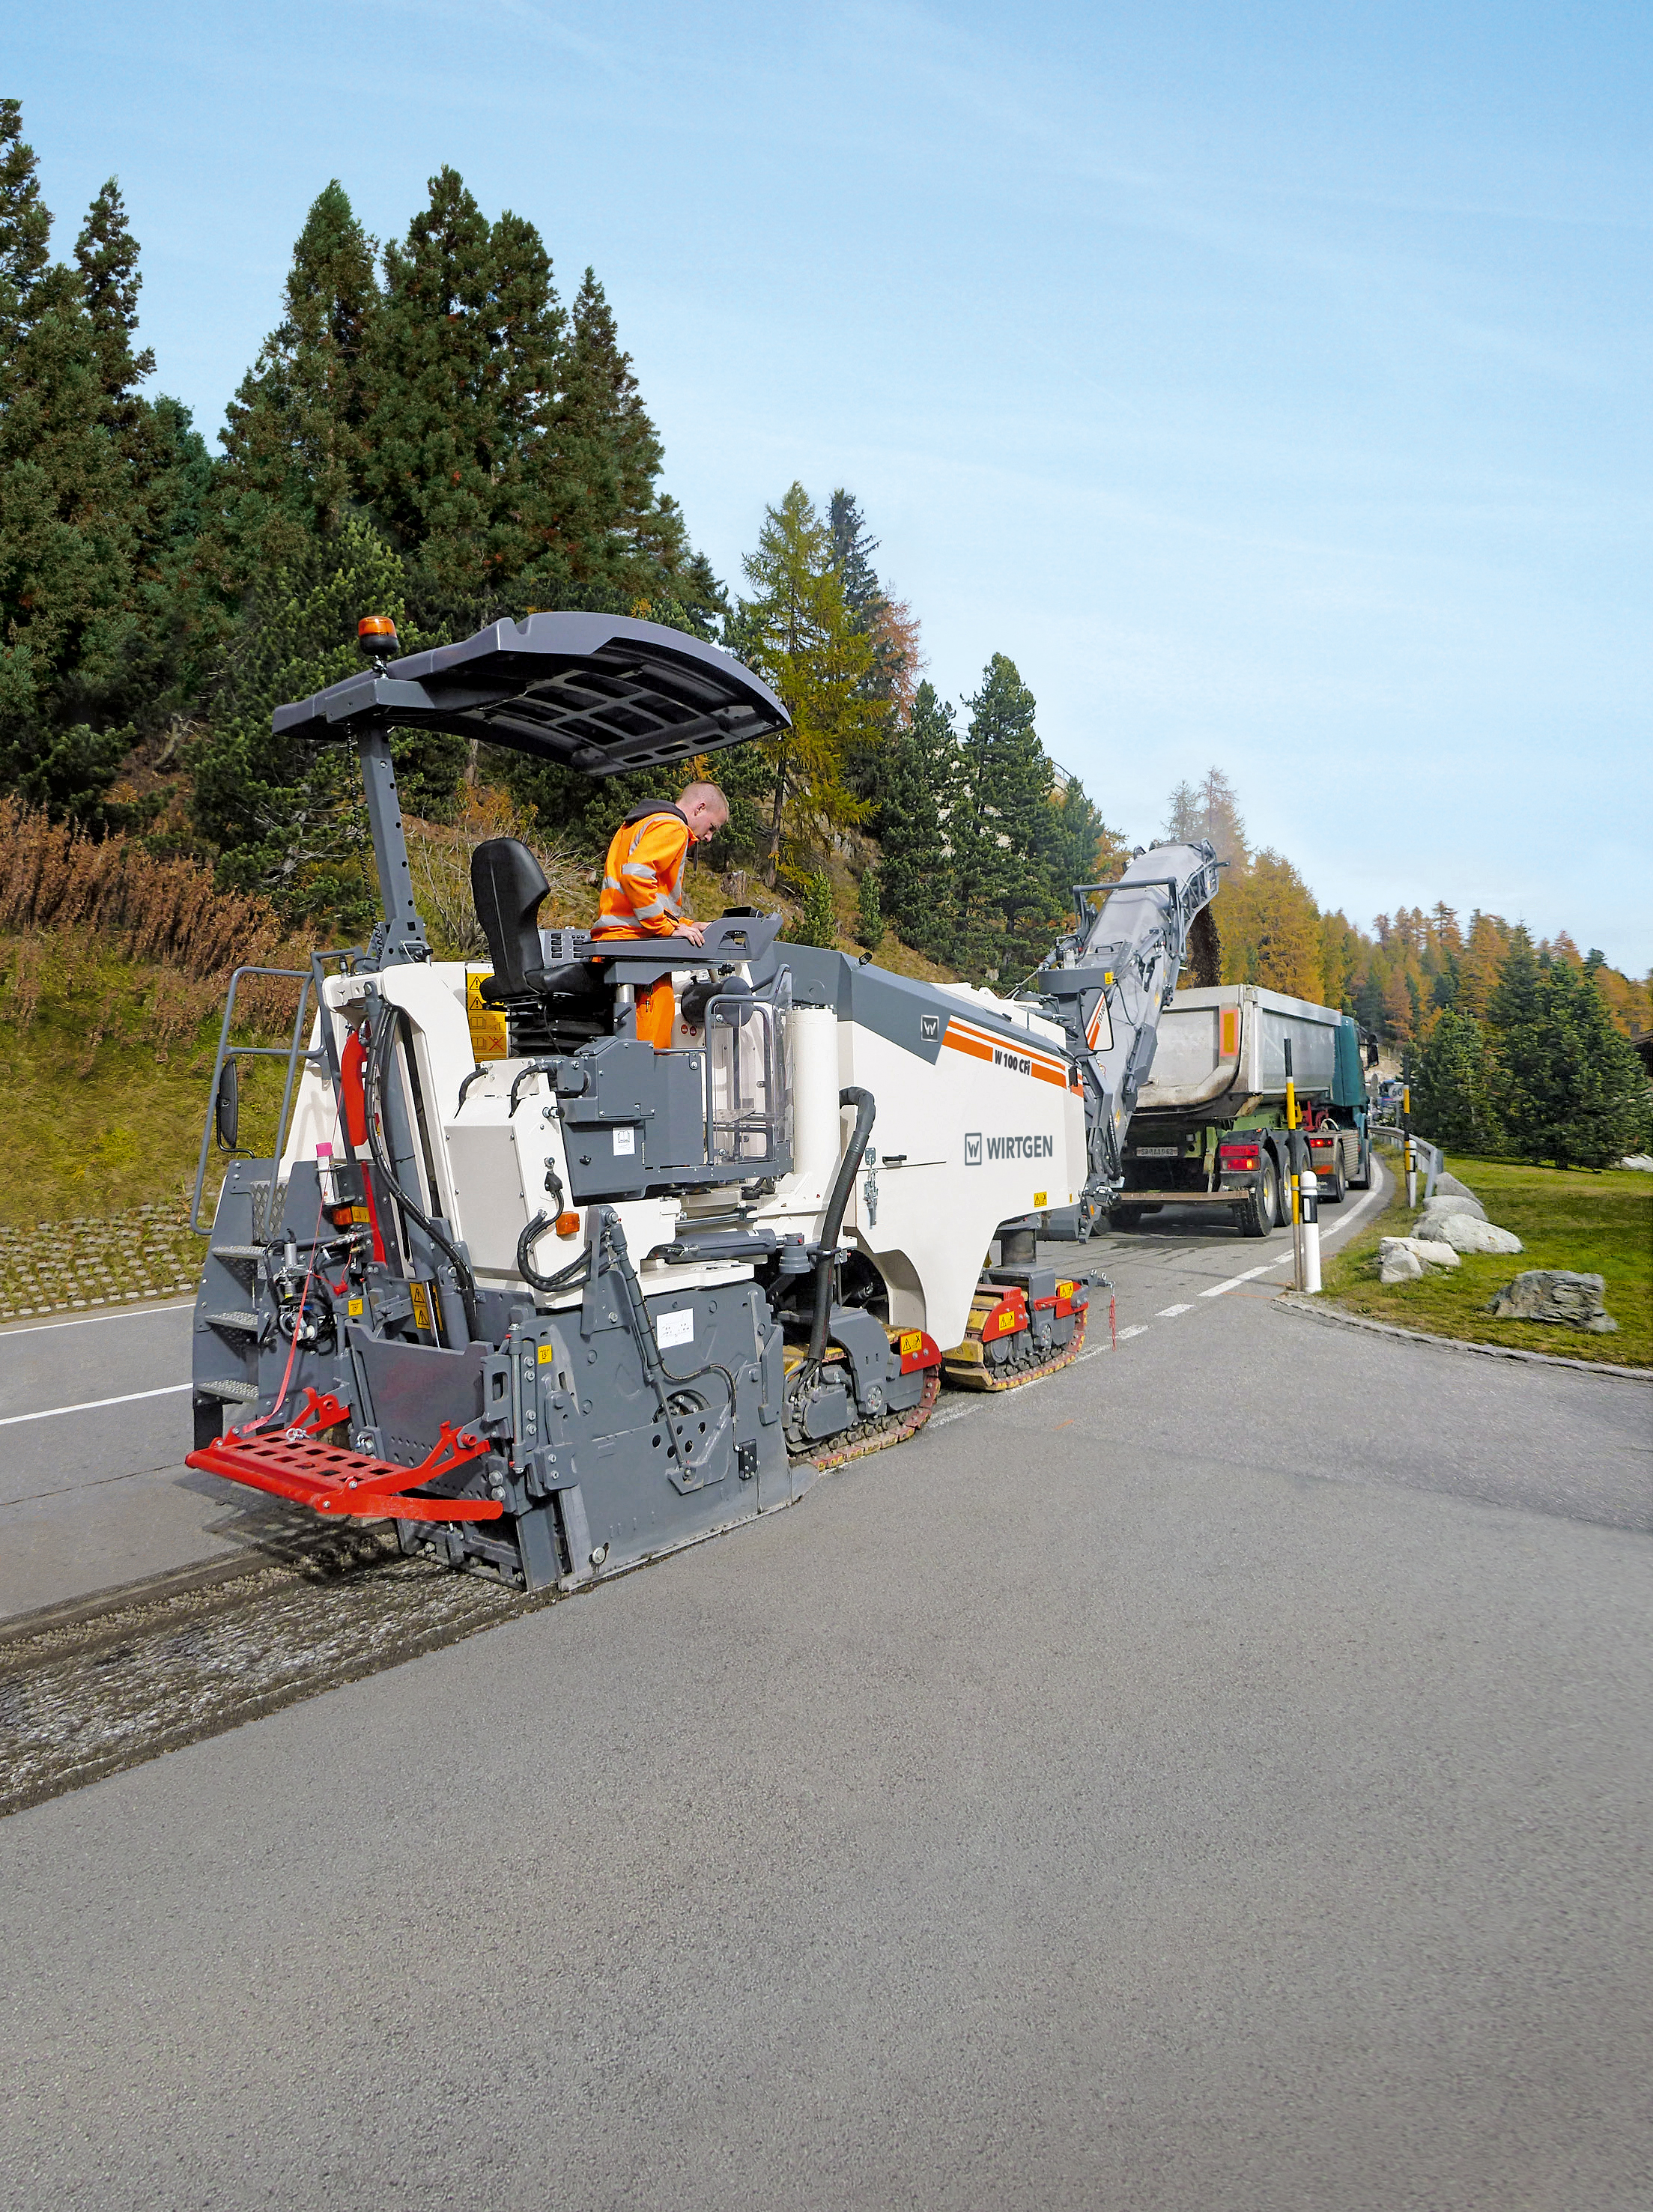 The new Wirtgen W 100 CFi in the Compact Class, with its 3 ft., 3 in. (1-m) working width and 0 – 13-in. (0 - 330-mm) working depth, masters every application, such as milling off pavement layers or milling tie-ins on road rehabilitation projects. With its modified machine weight and compact dimensions, it can be easily transported without a special permit.